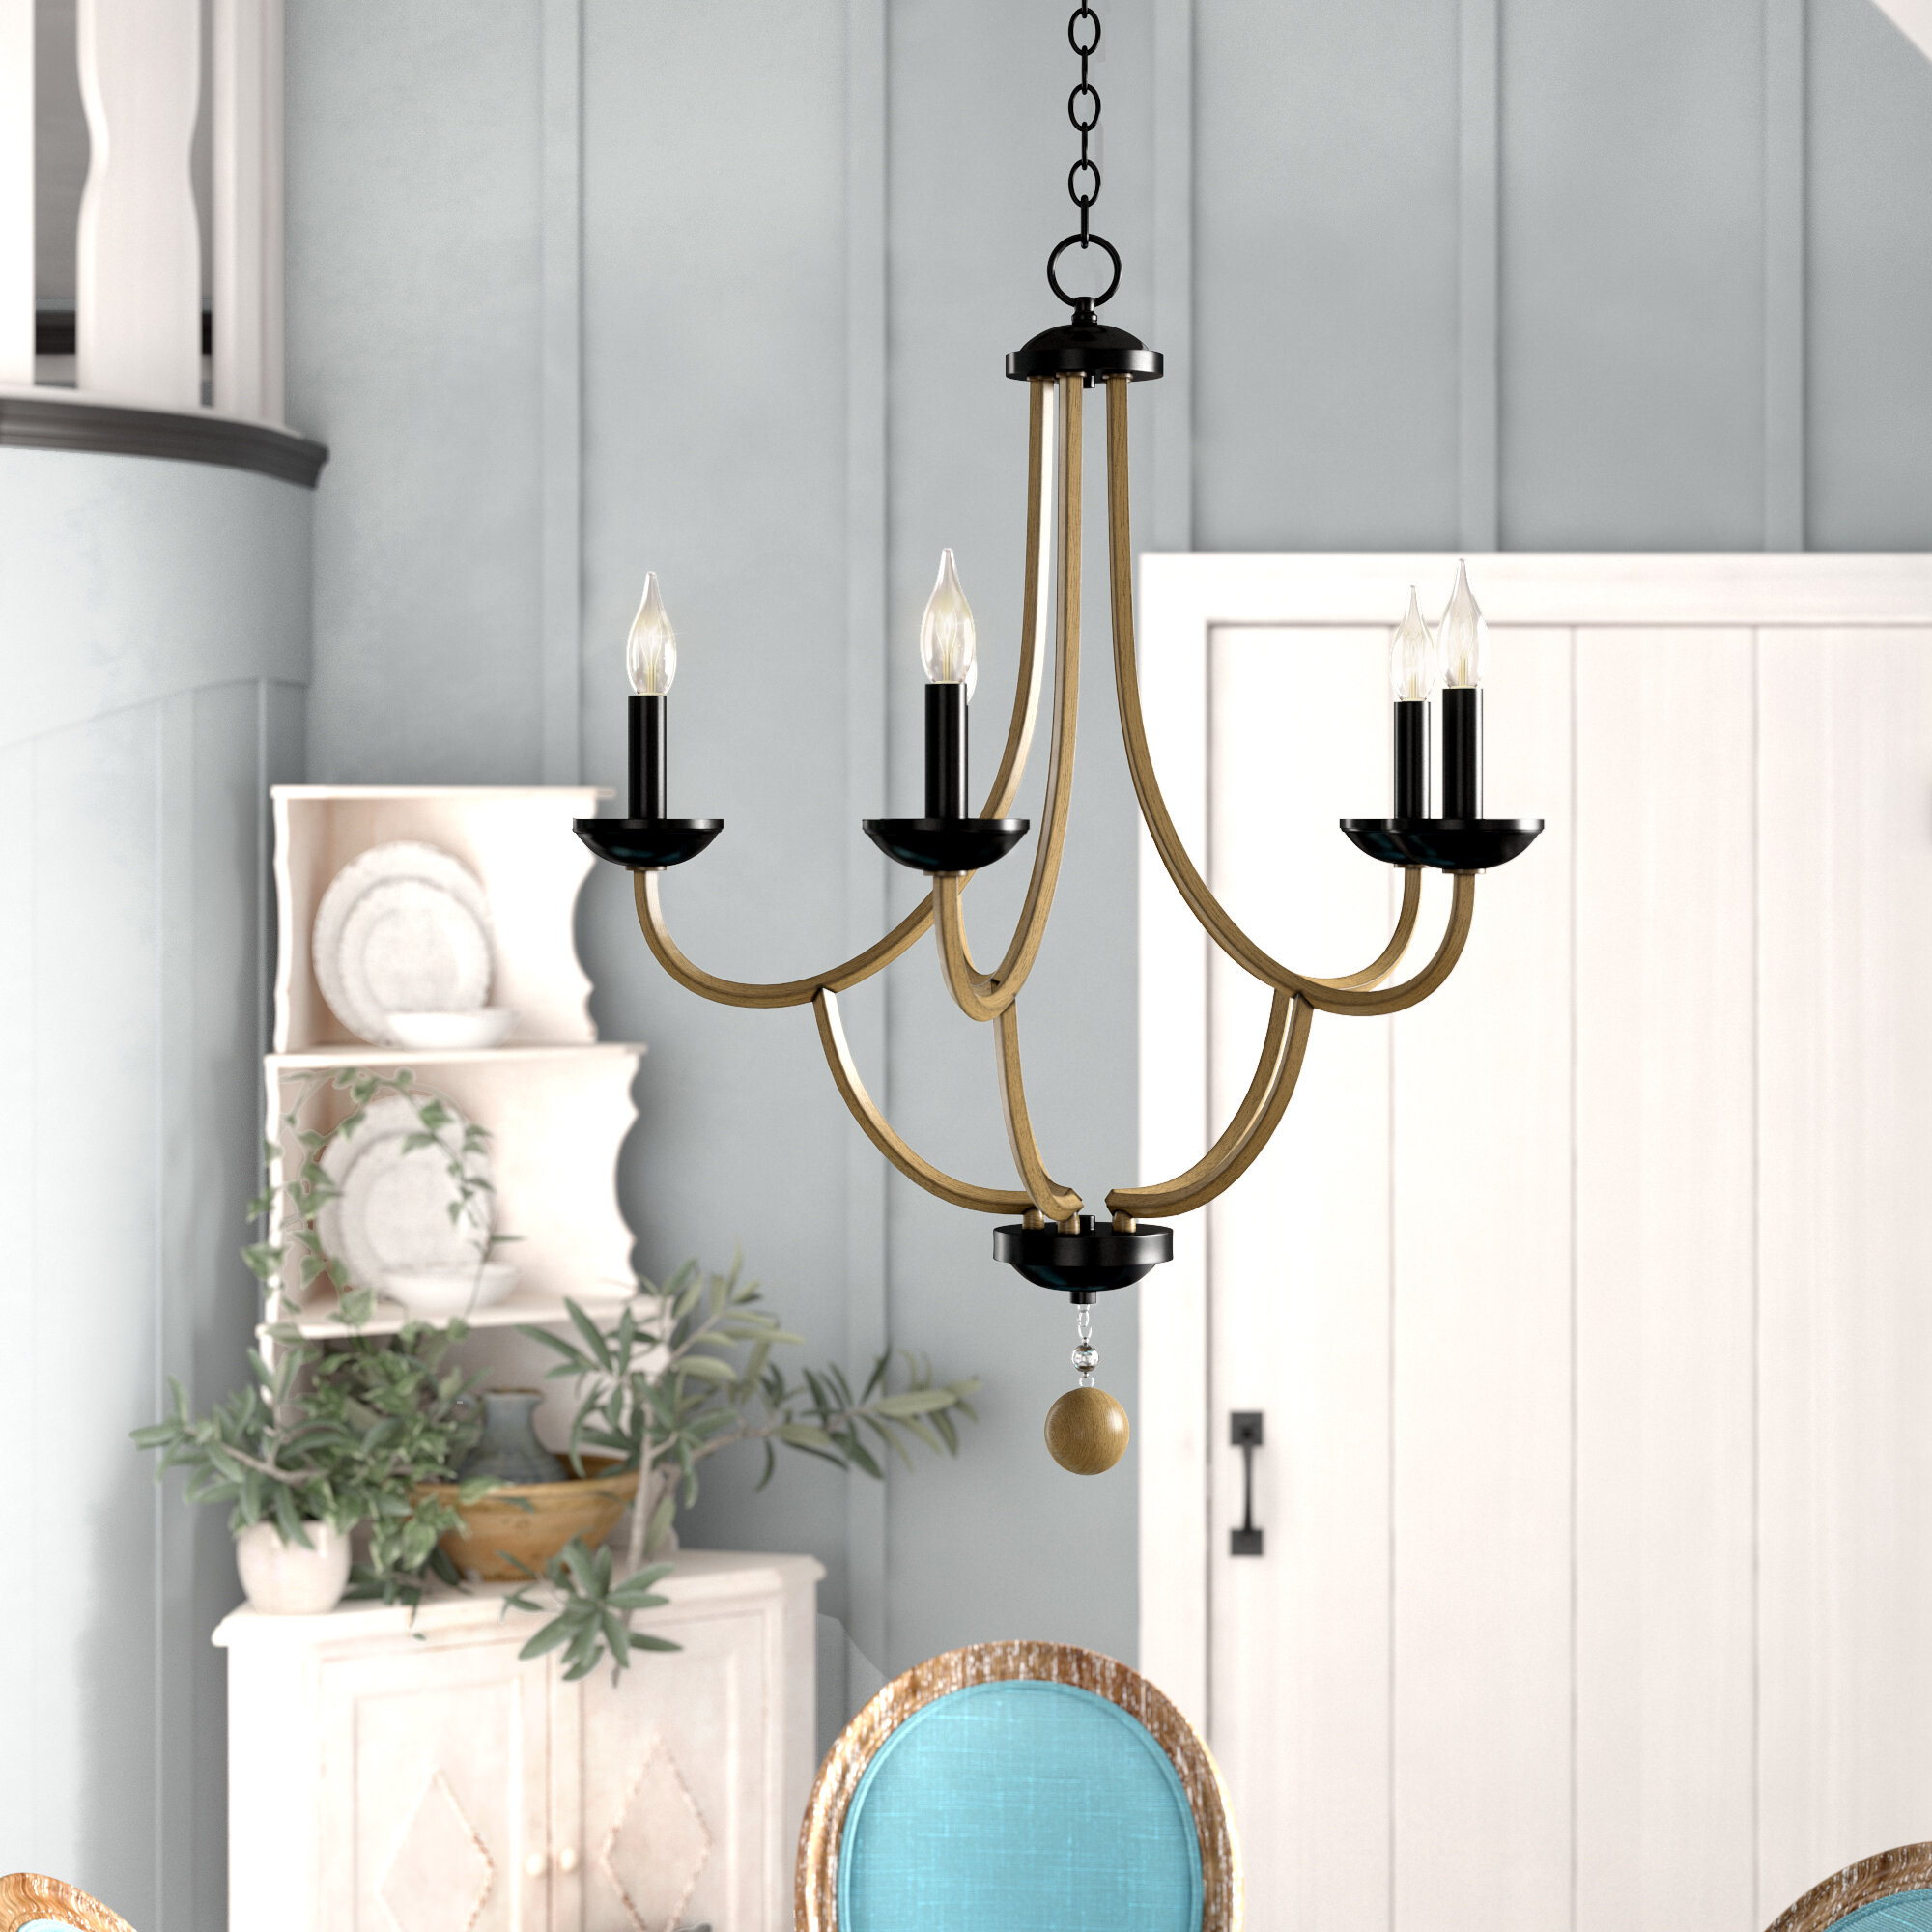 Winget 5-Light Candle Style Chandelier with regard to Watford 9-Light Candle Style Chandeliers (Image 29 of 30)